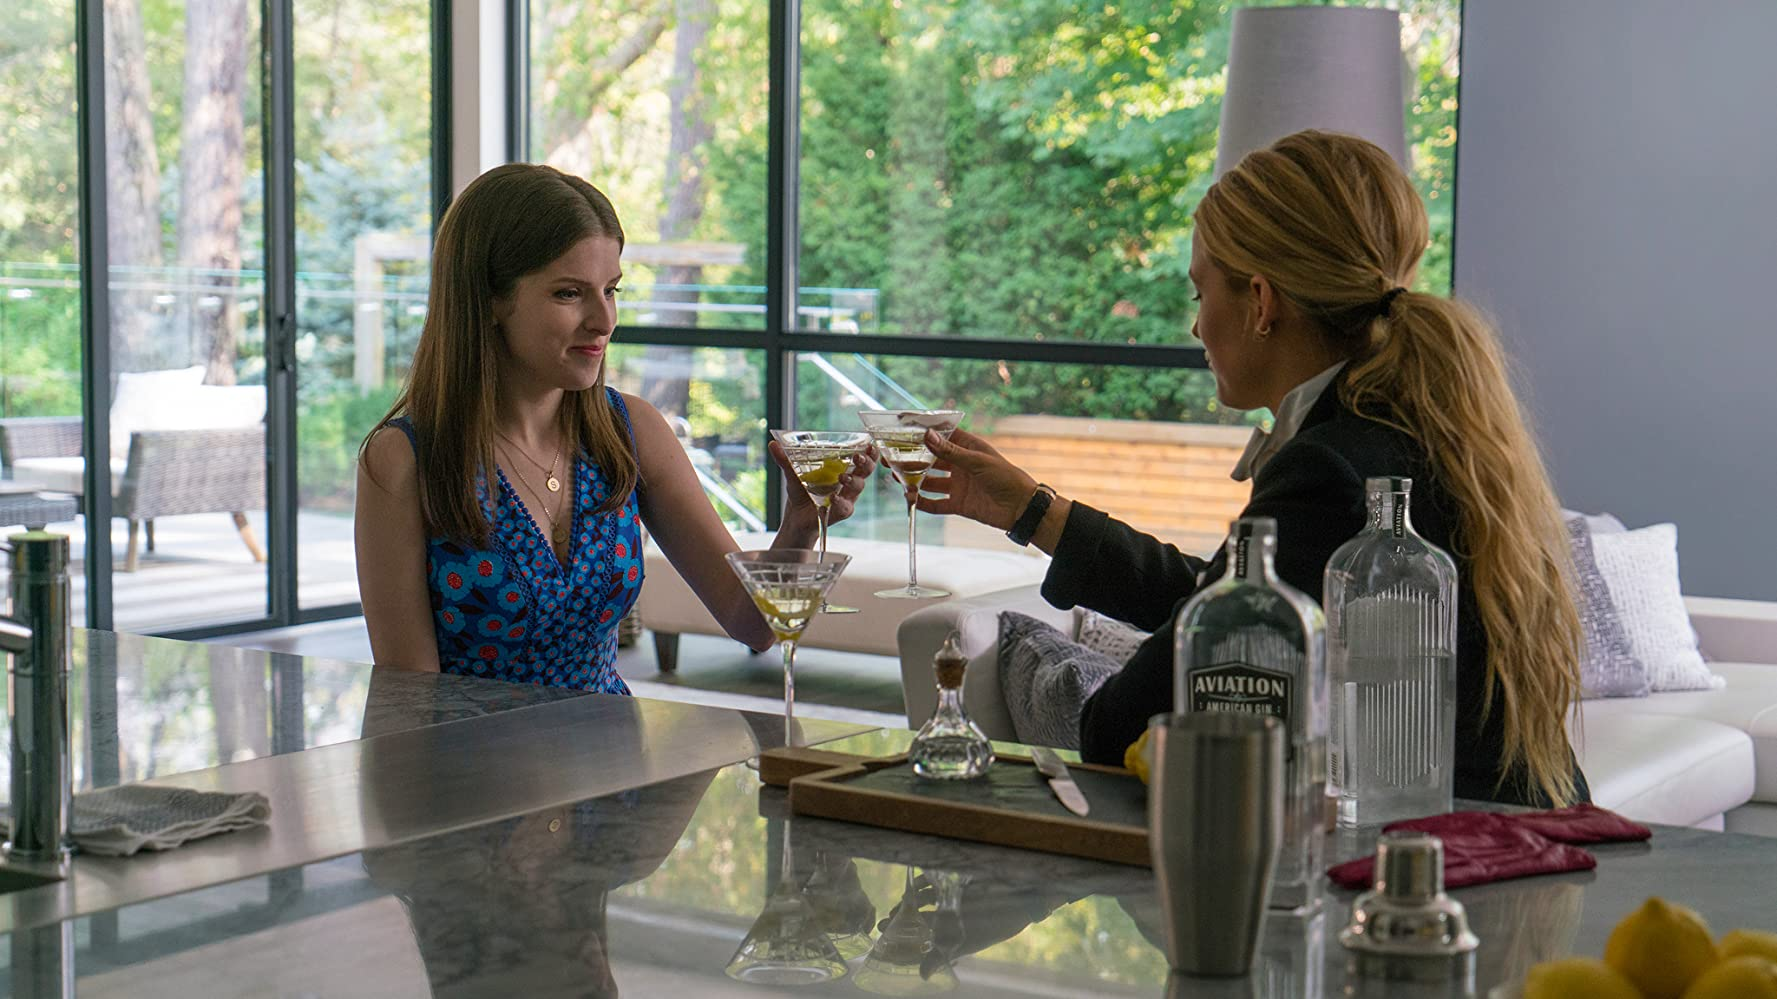 Anna Kendrick and Blake Lively in A Simple Favor (2018)